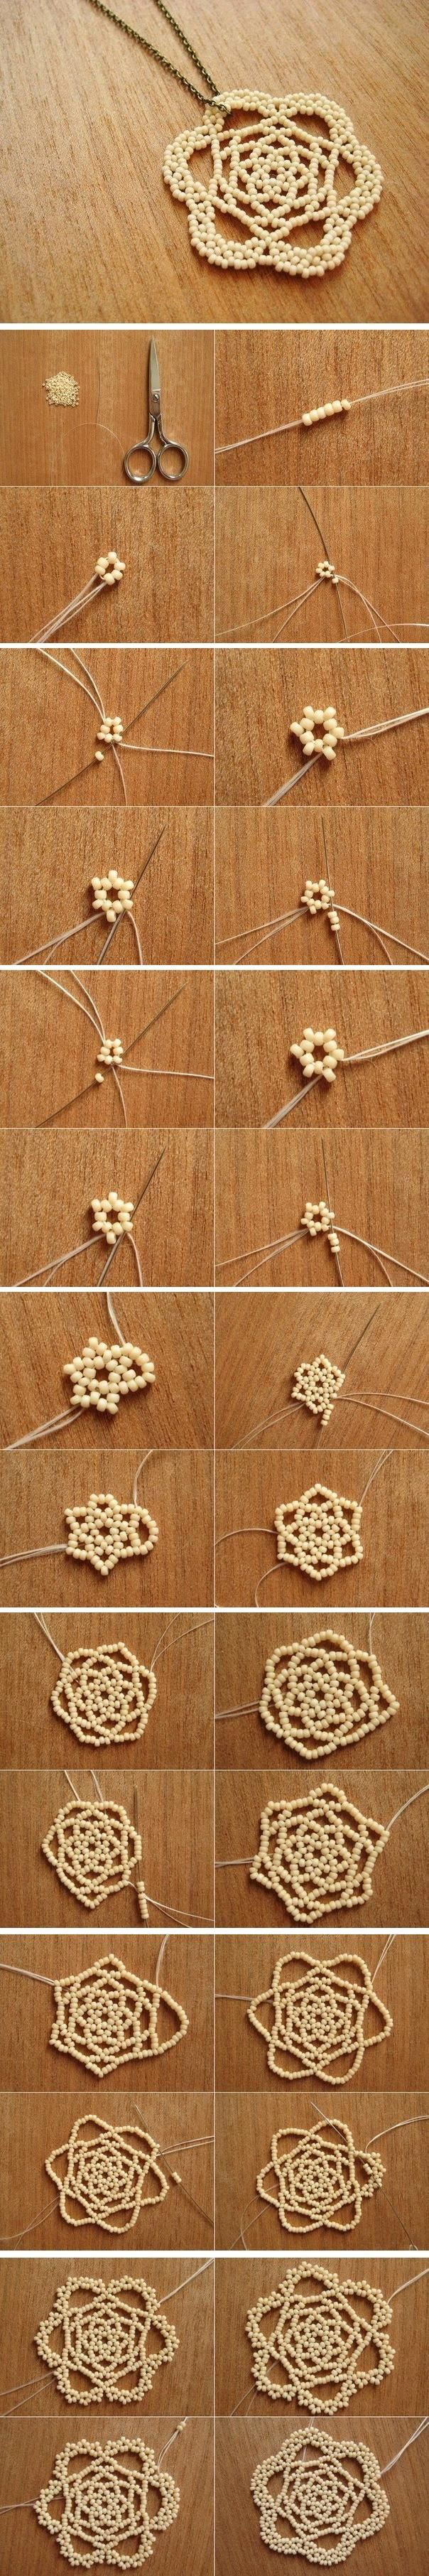 743 best Art s and Craft s images on Pinterest